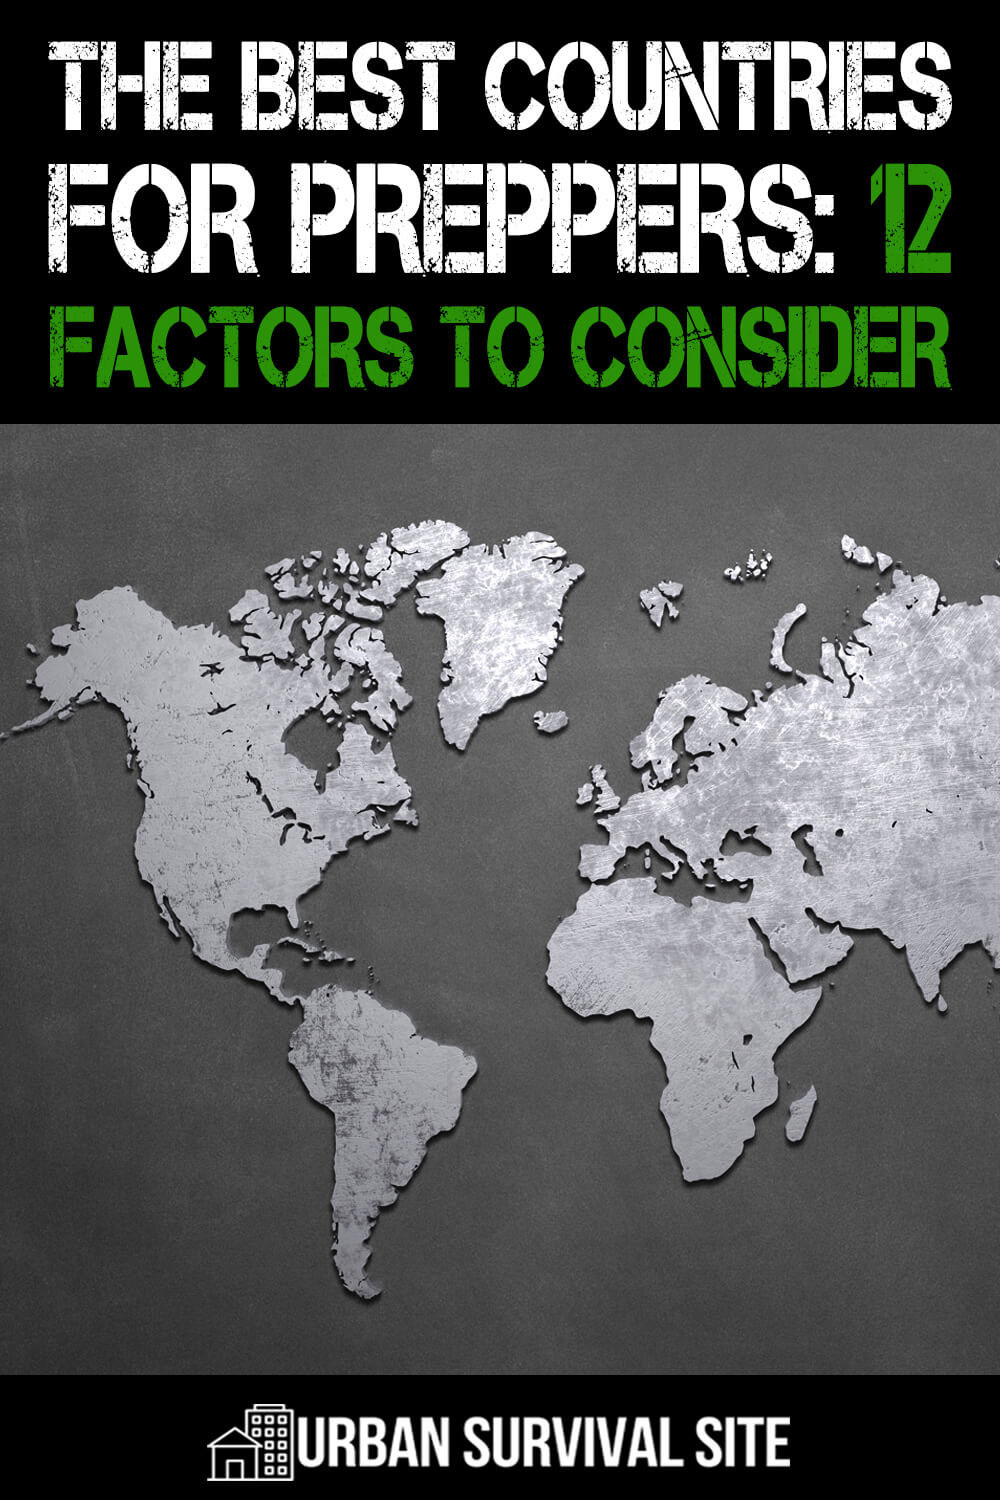 The Best Countries for Preppers: 12 Factors to Consider